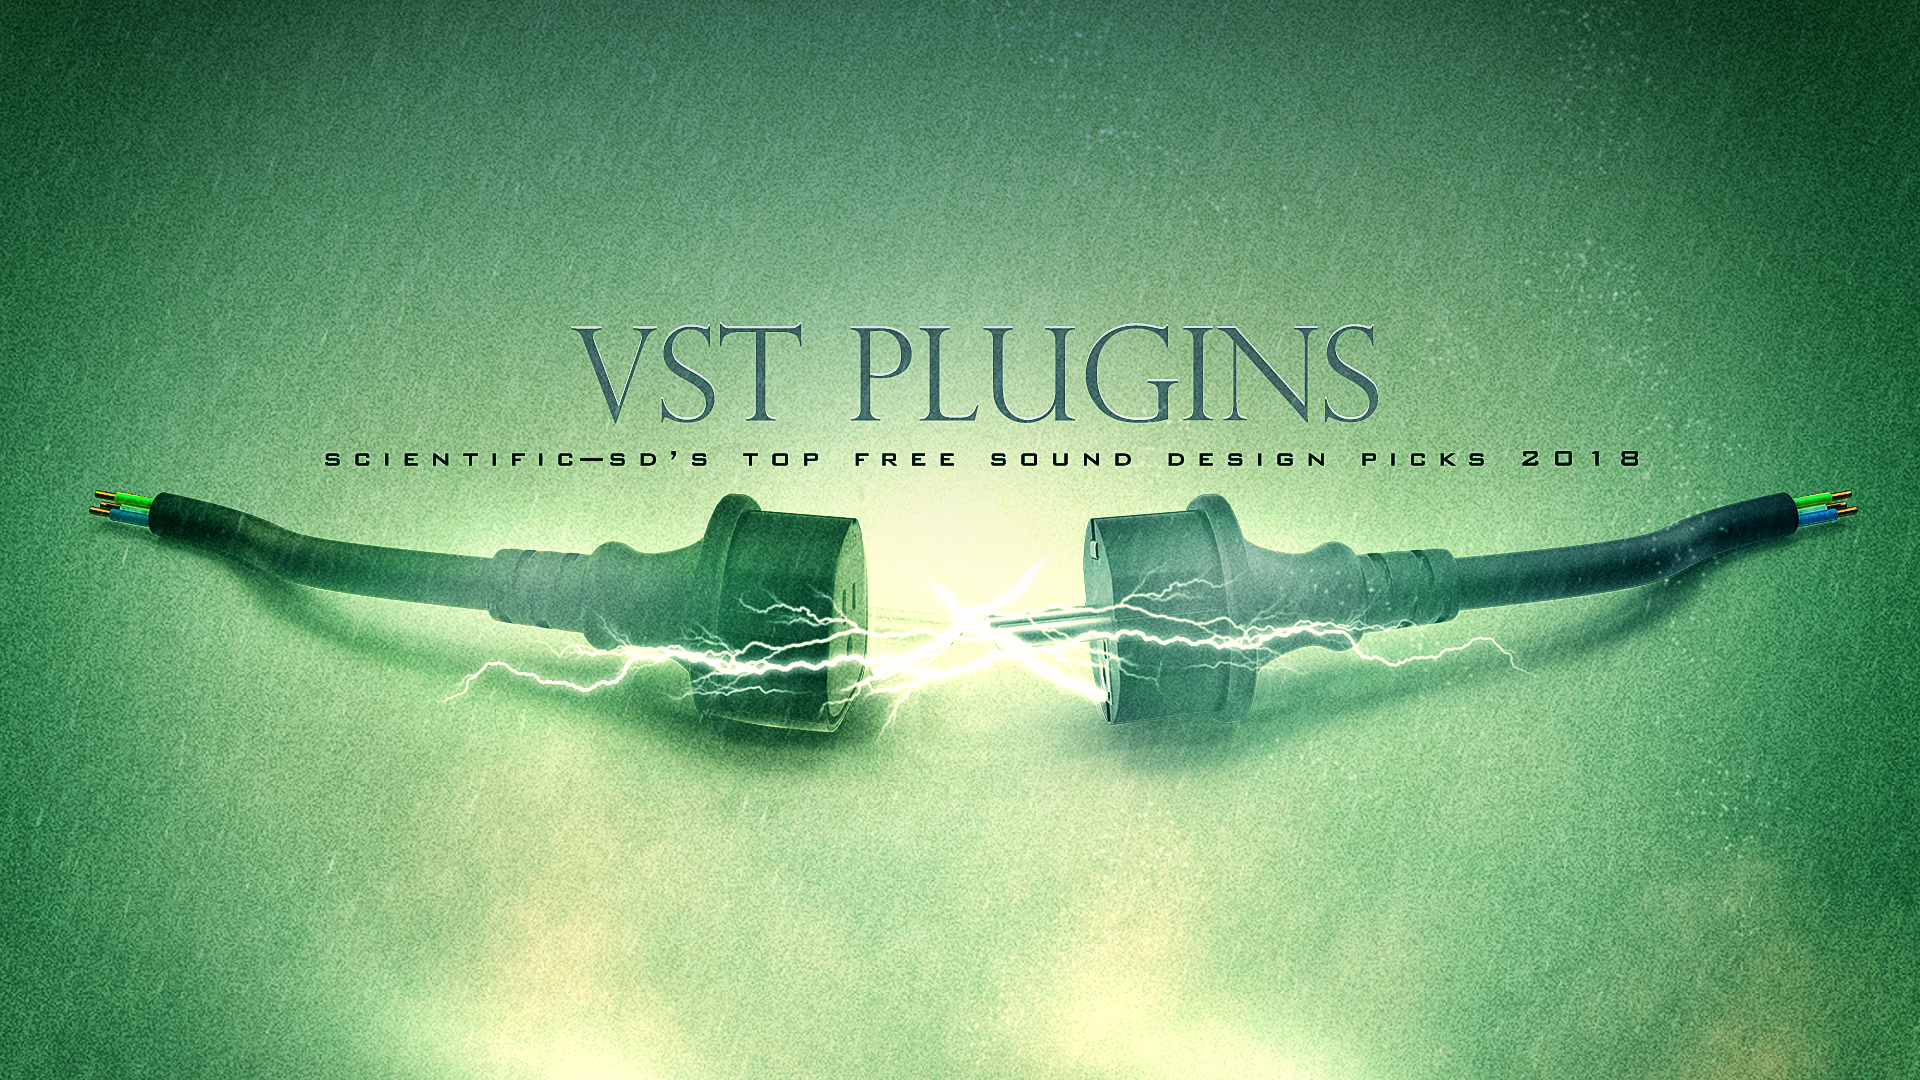 scientific-sd's Top free vst plugins of 2018 that assist in creating sound designs, efx's and audio production sounds/samples from scratch.